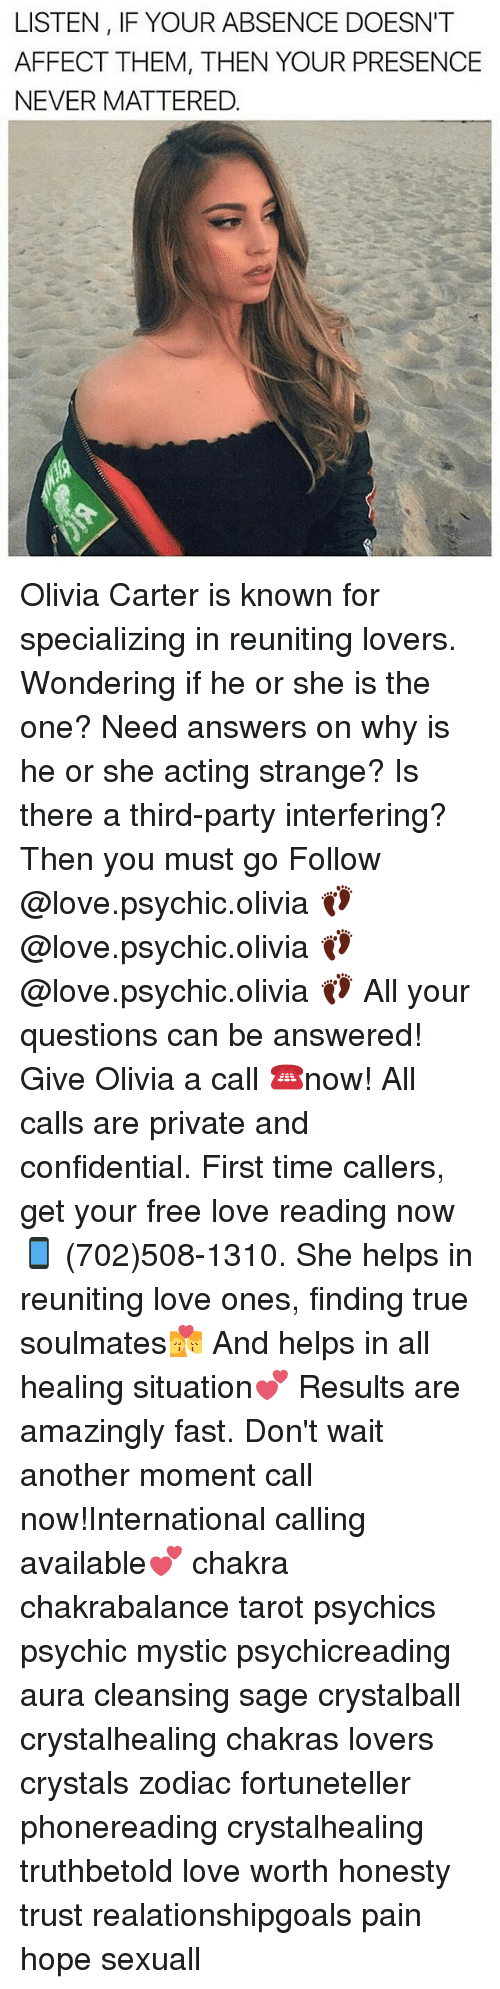 Third Party: LISTEN, IF YOUR ABSENCE DOESN'T  AFFECT THEM, THEN YOUR PRESENCE  NEVER MATTERED. Olivia Carter is known for specializing in reuniting lovers. Wondering if he or she is the one? Need answers on why is he or she acting strange? Is there a third-party interfering? Then you must go Follow @love.psychic.olivia 👣 @love.psychic.olivia 👣 @love.psychic.olivia 👣 All your questions can be answered! Give Olivia a call ☎️now! All calls are private and confidential. First time callers, get your free love reading now 📱 (702)508-1310. She helps in reuniting love ones, finding true soulmates💏 And helps in all healing situation💕 Results are amazingly fast. Don't wait another moment call now!International calling available💕 chakra chakrabalance tarot psychics psychic mystic psychicreading aura cleansing sage crystalball crystalhealing chakras lovers crystals zodiac fortuneteller phonereading crystalhealing truthbetold love worth honesty trust realationshipgoals pain hope sexuall